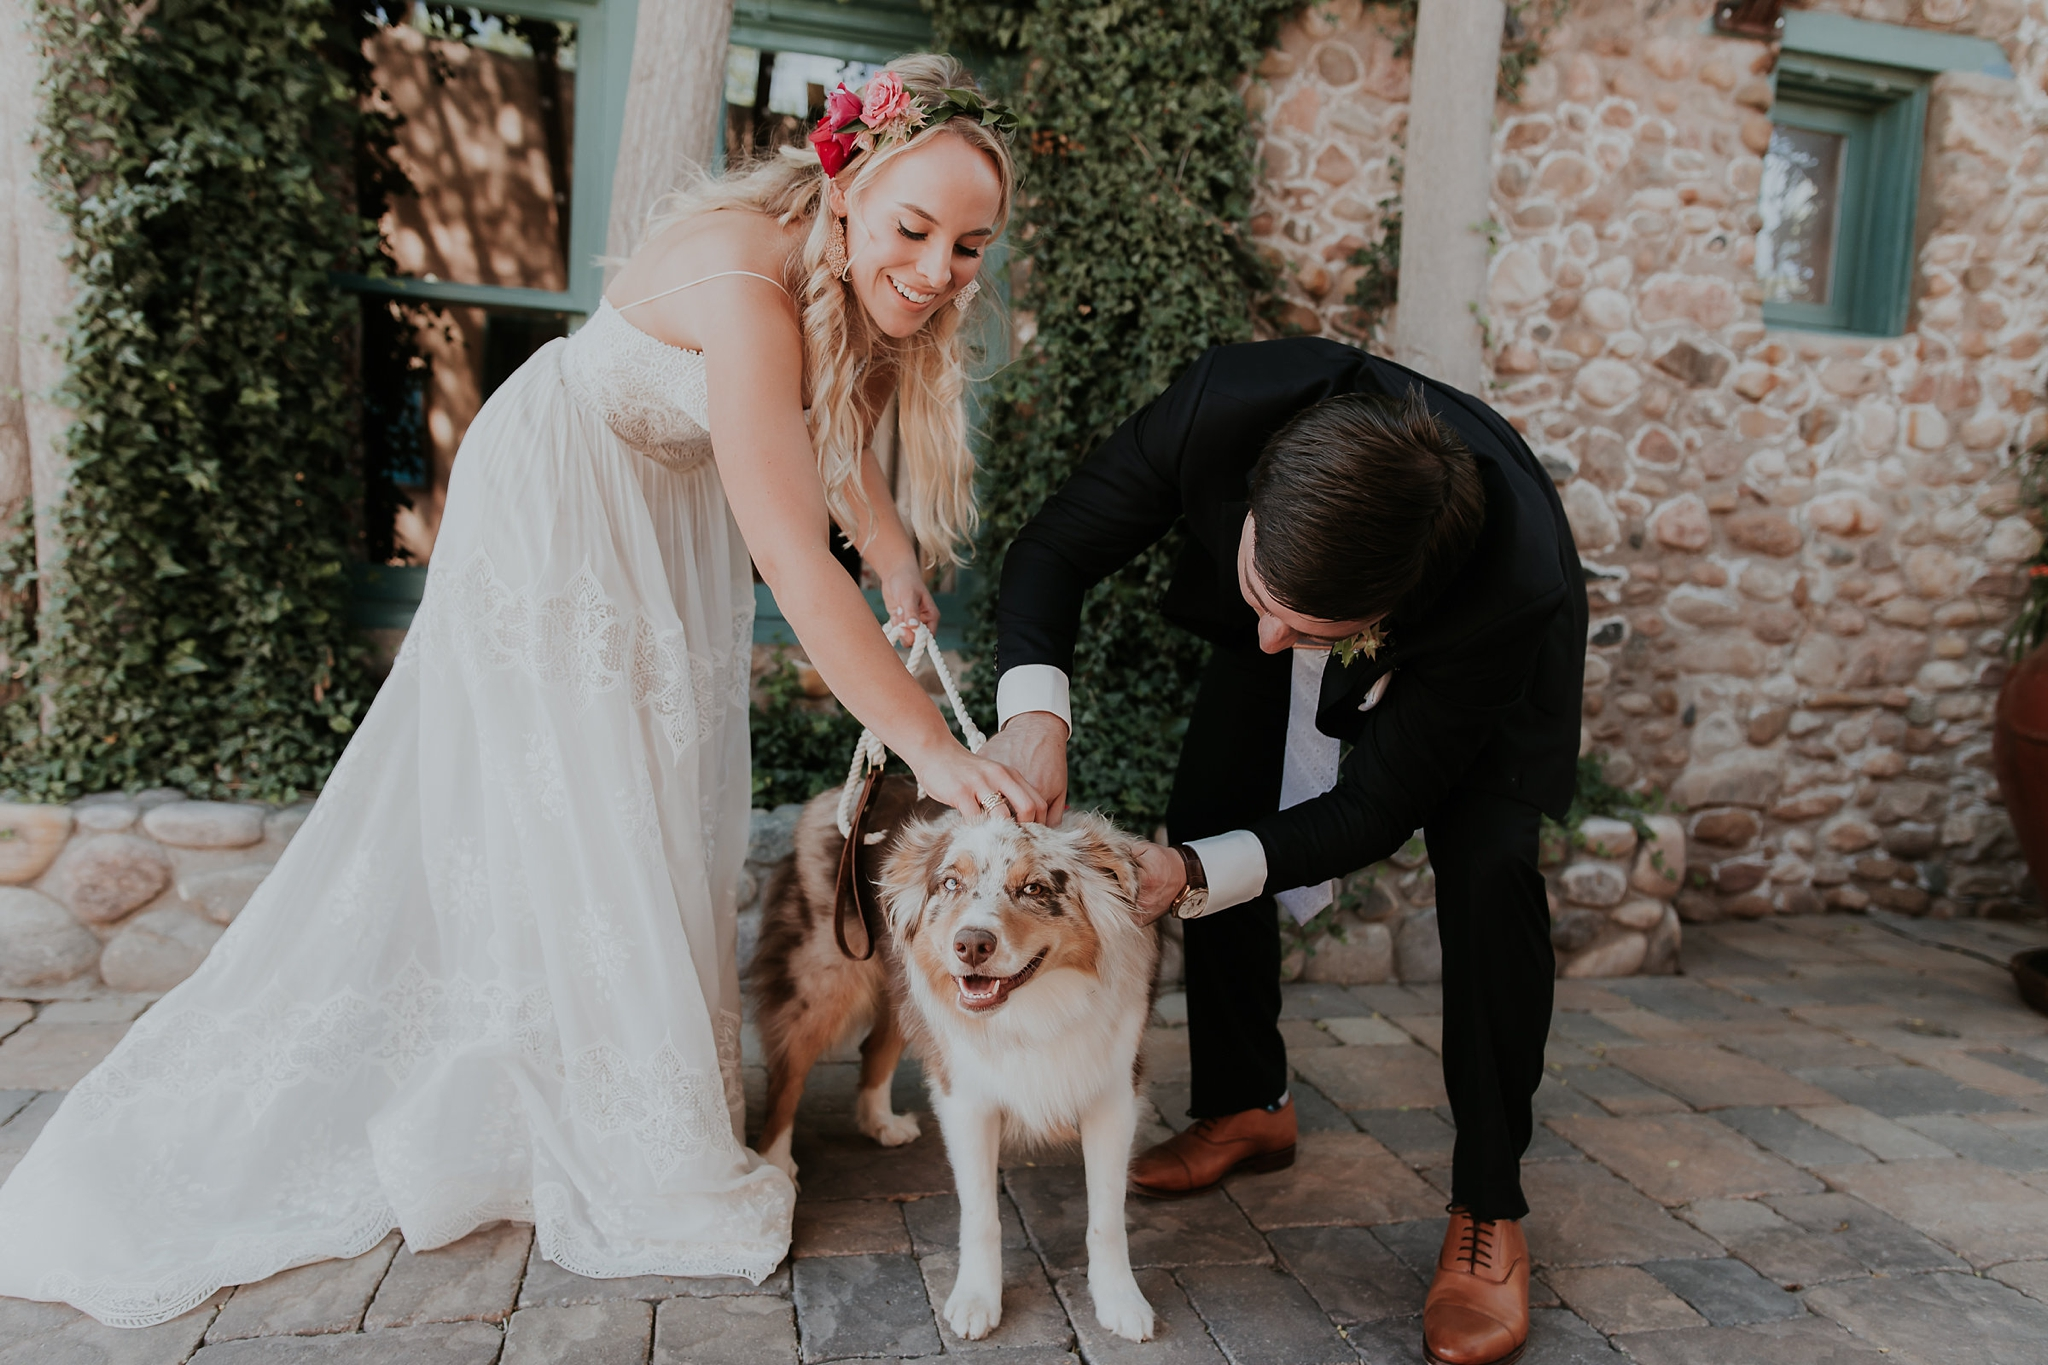 Alicia+lucia+photography+-+albuquerque+wedding+photographer+-+santa+fe+wedding+photography+-+new+mexico+wedding+photographer+-+new+mexico+wedding+-+wedding+gowns+-+bridal+gowns+-+a+line+wedding+gown_0053.jpg